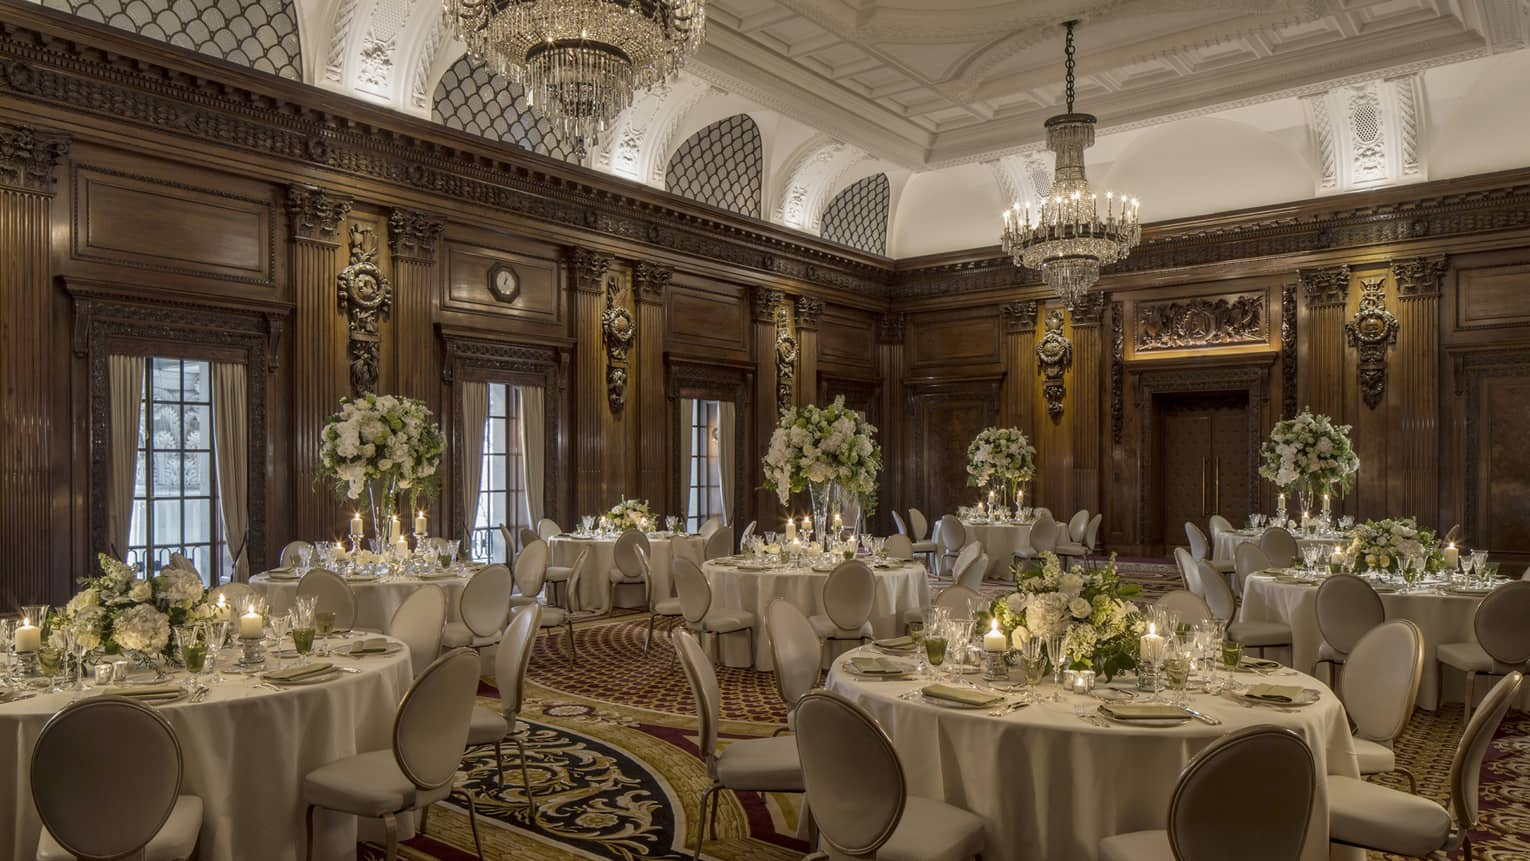 Elegant ballroom with decorative wood walls, crystal chandeliers over round banquet dining tables